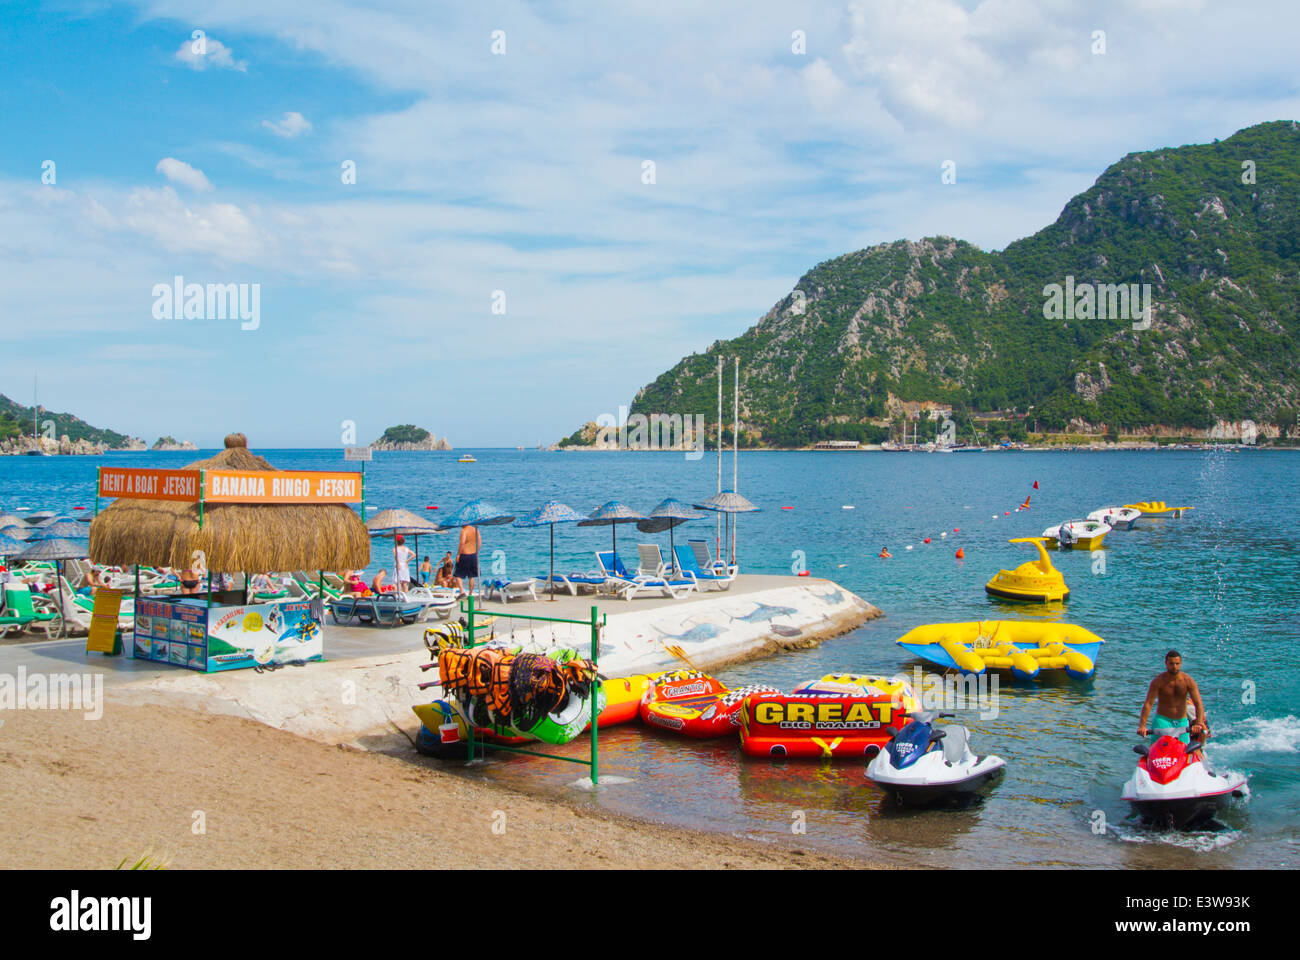 Watersports,jetskis and other equipement rental, beach, Icmeler resort, near Marmaris, Mugla province, Turkey, Asia - Stock Image